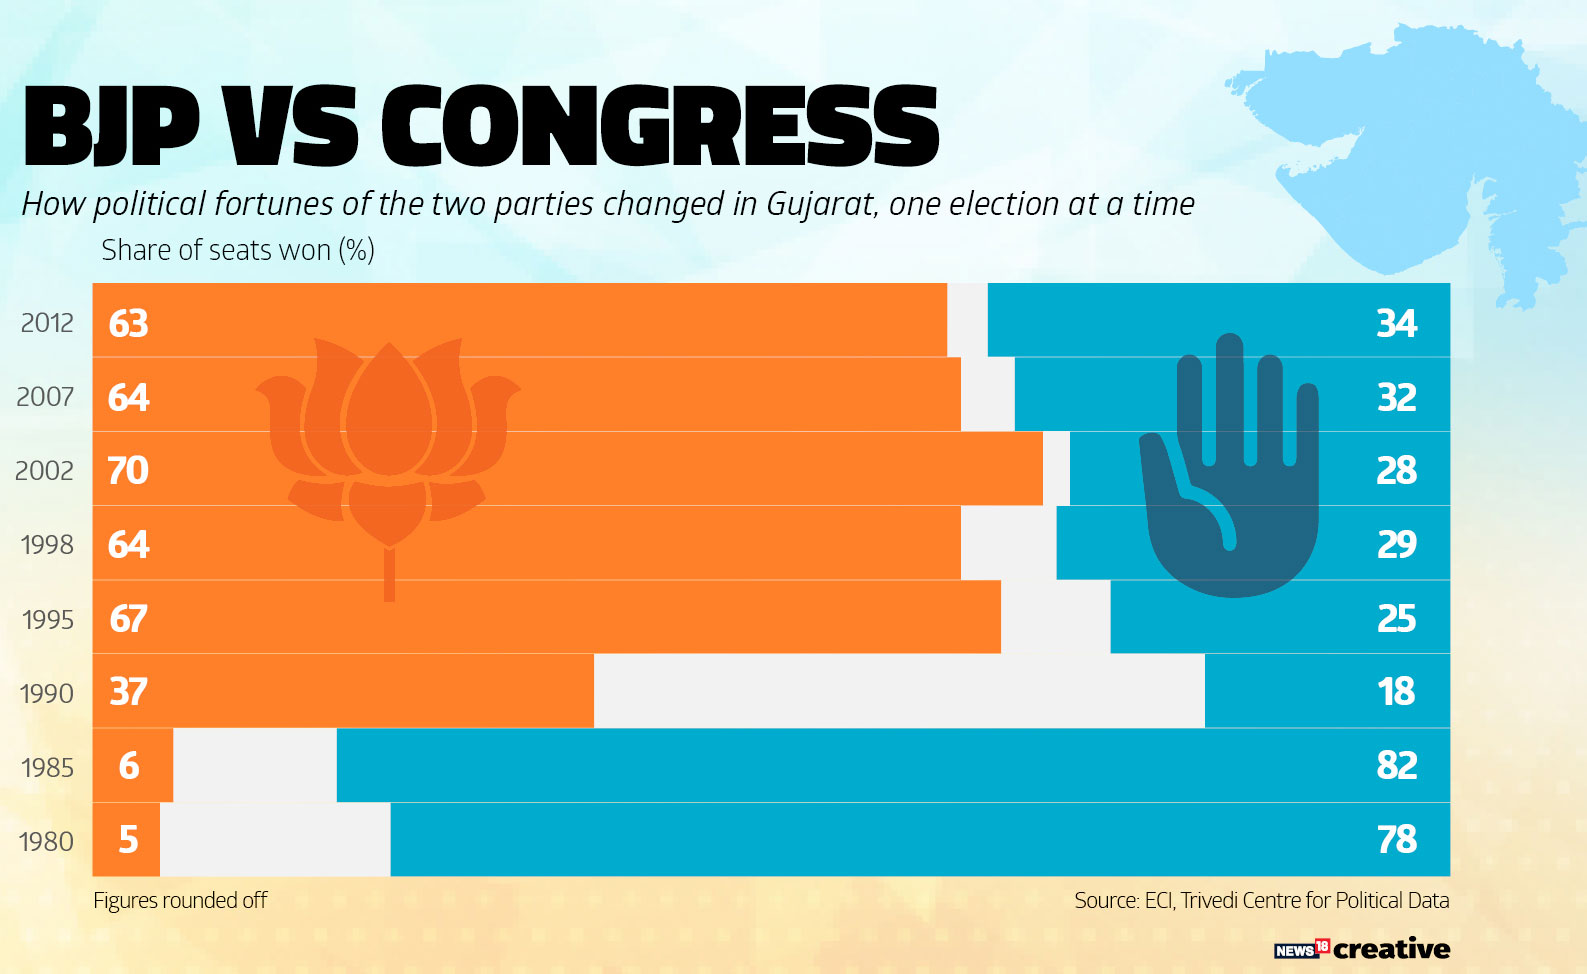 BJP-Cong-Seat-Share